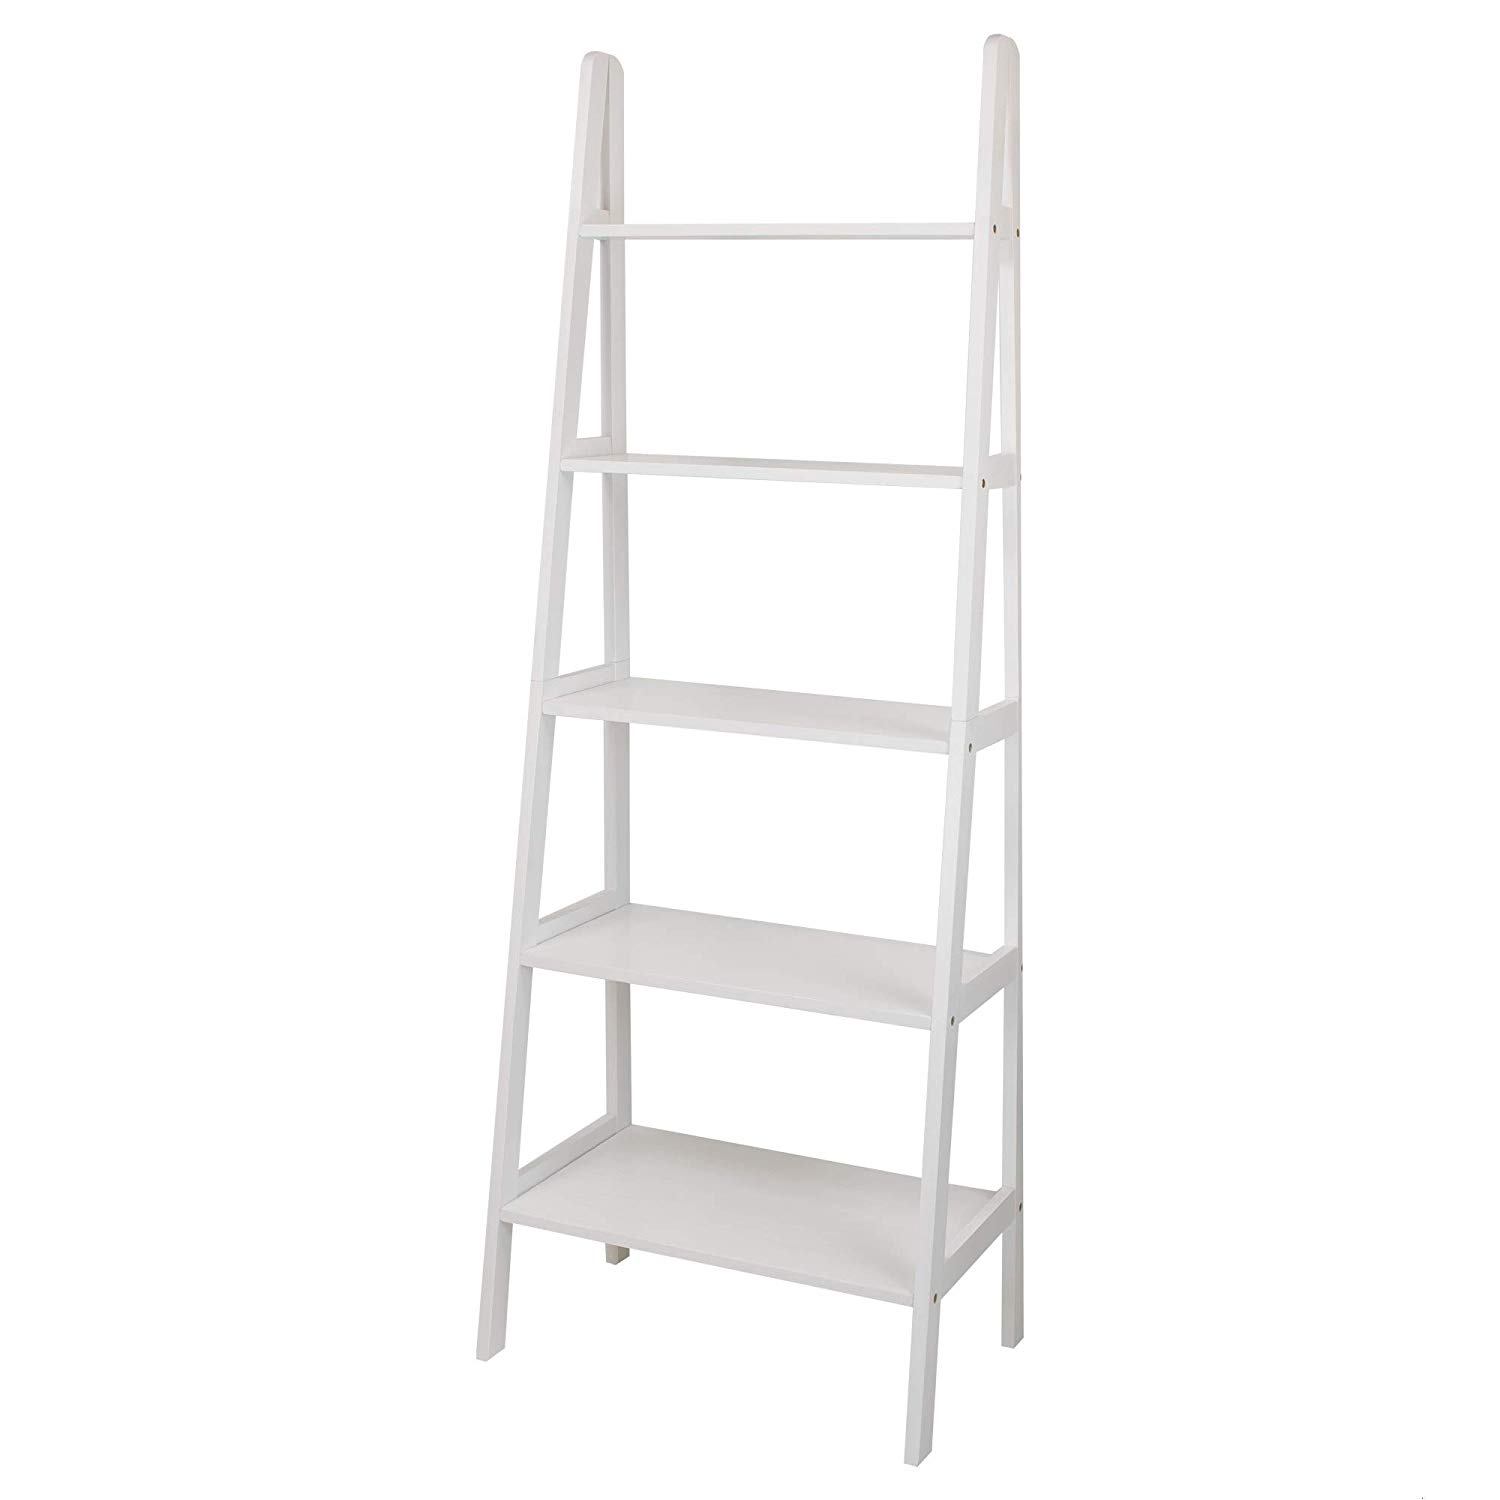 Details About Casual Home 176 51 5 Shelf Ladder Bookcase White